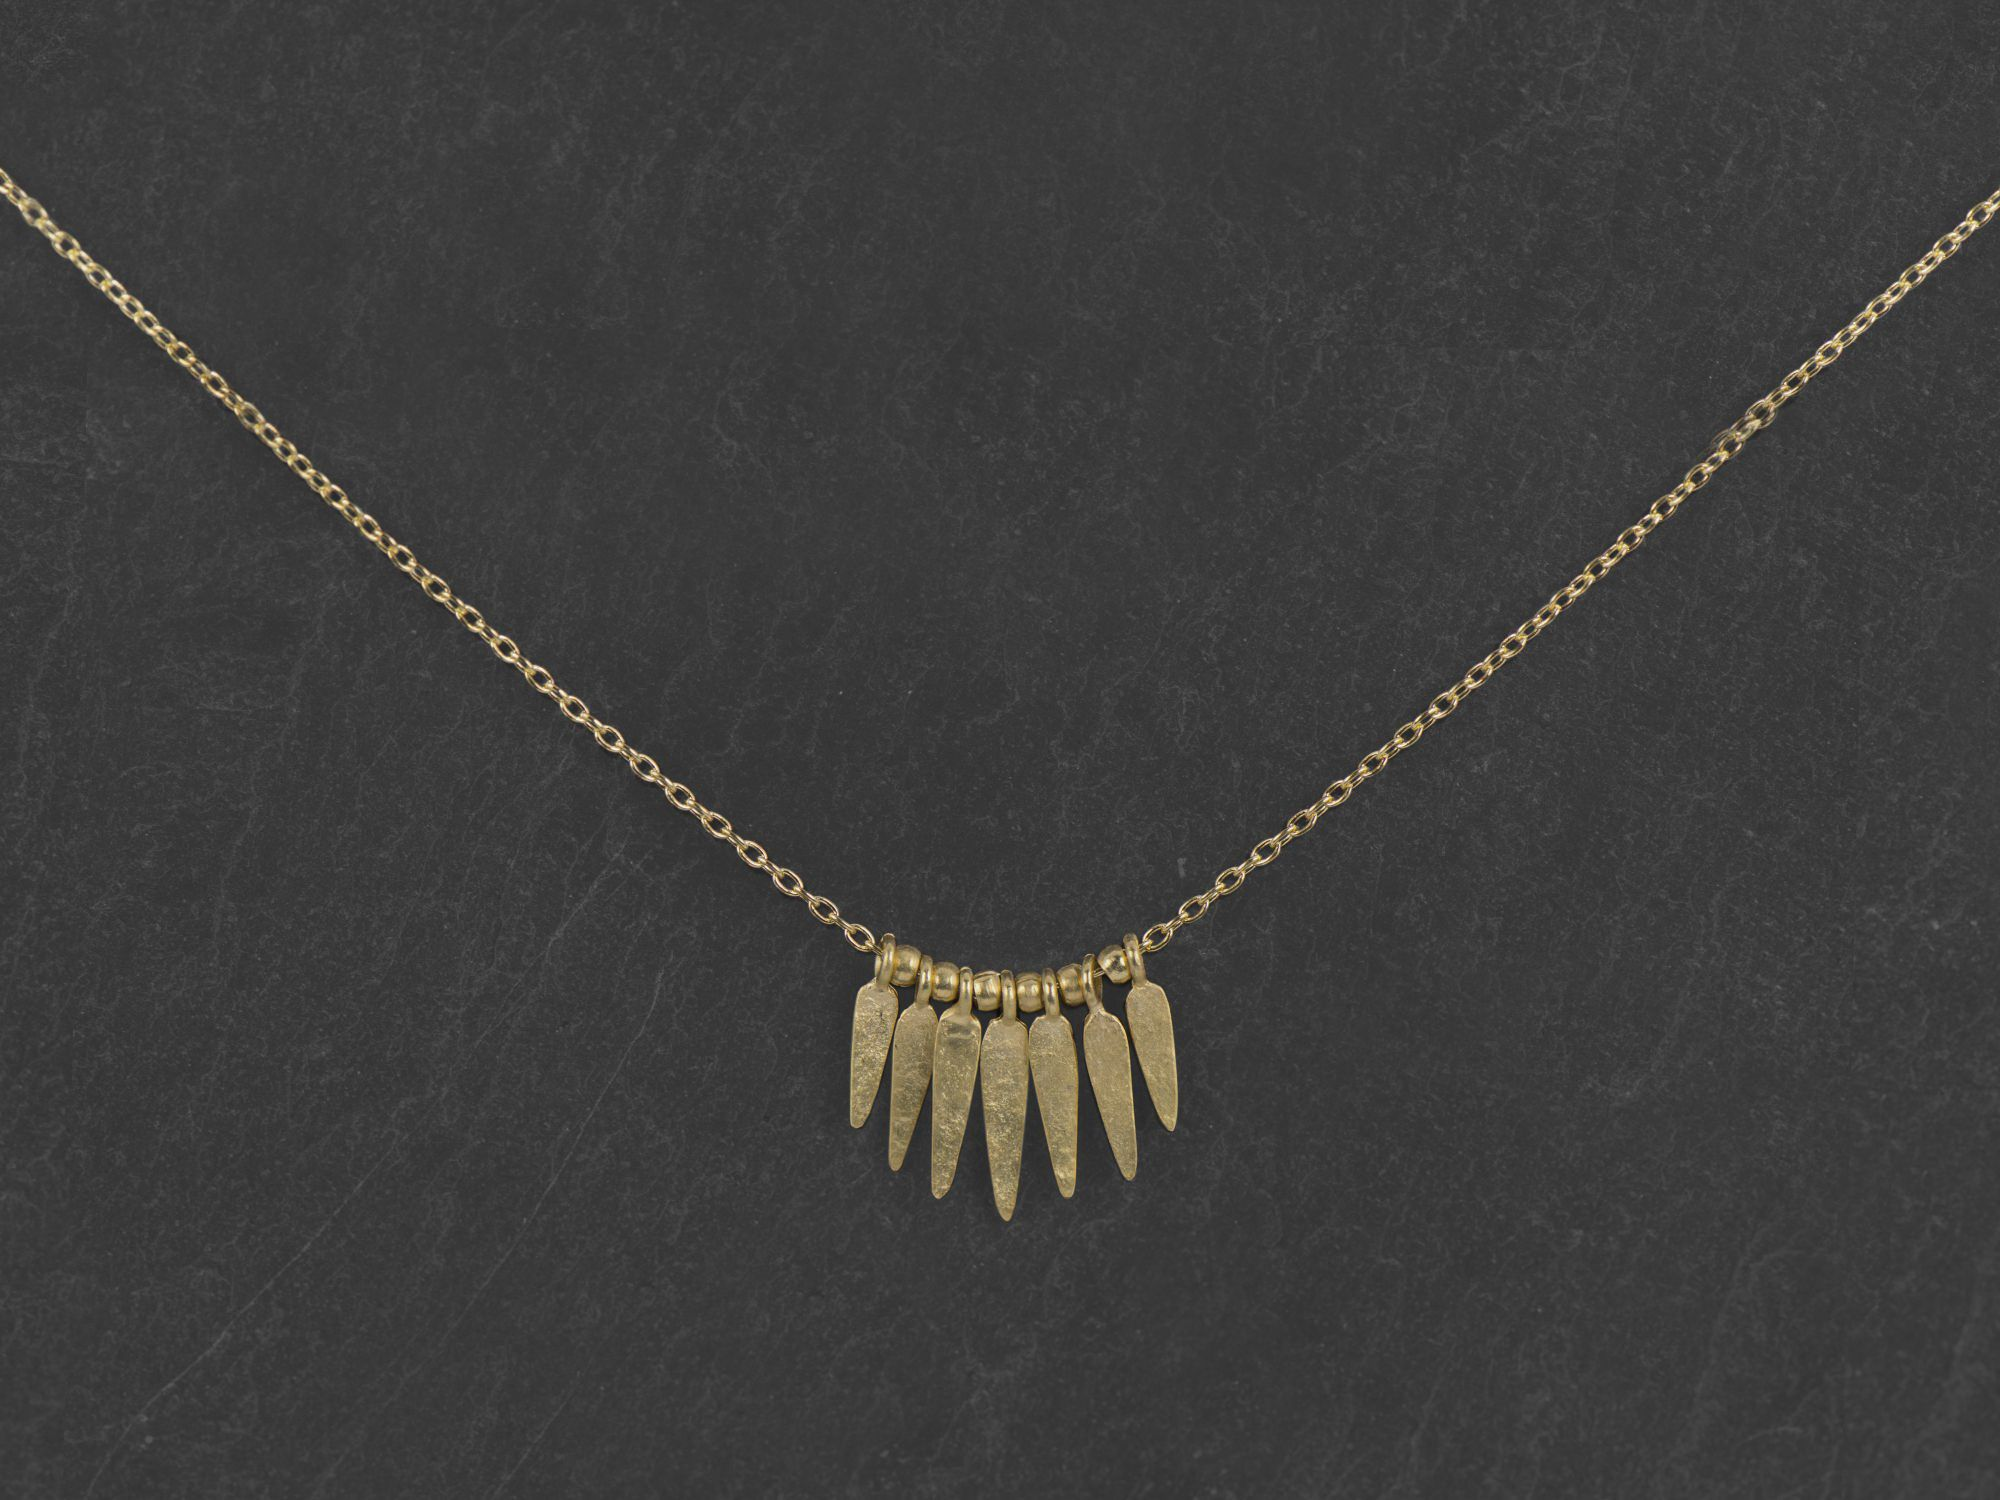 India Song necklace by Emmanuelle Zysman